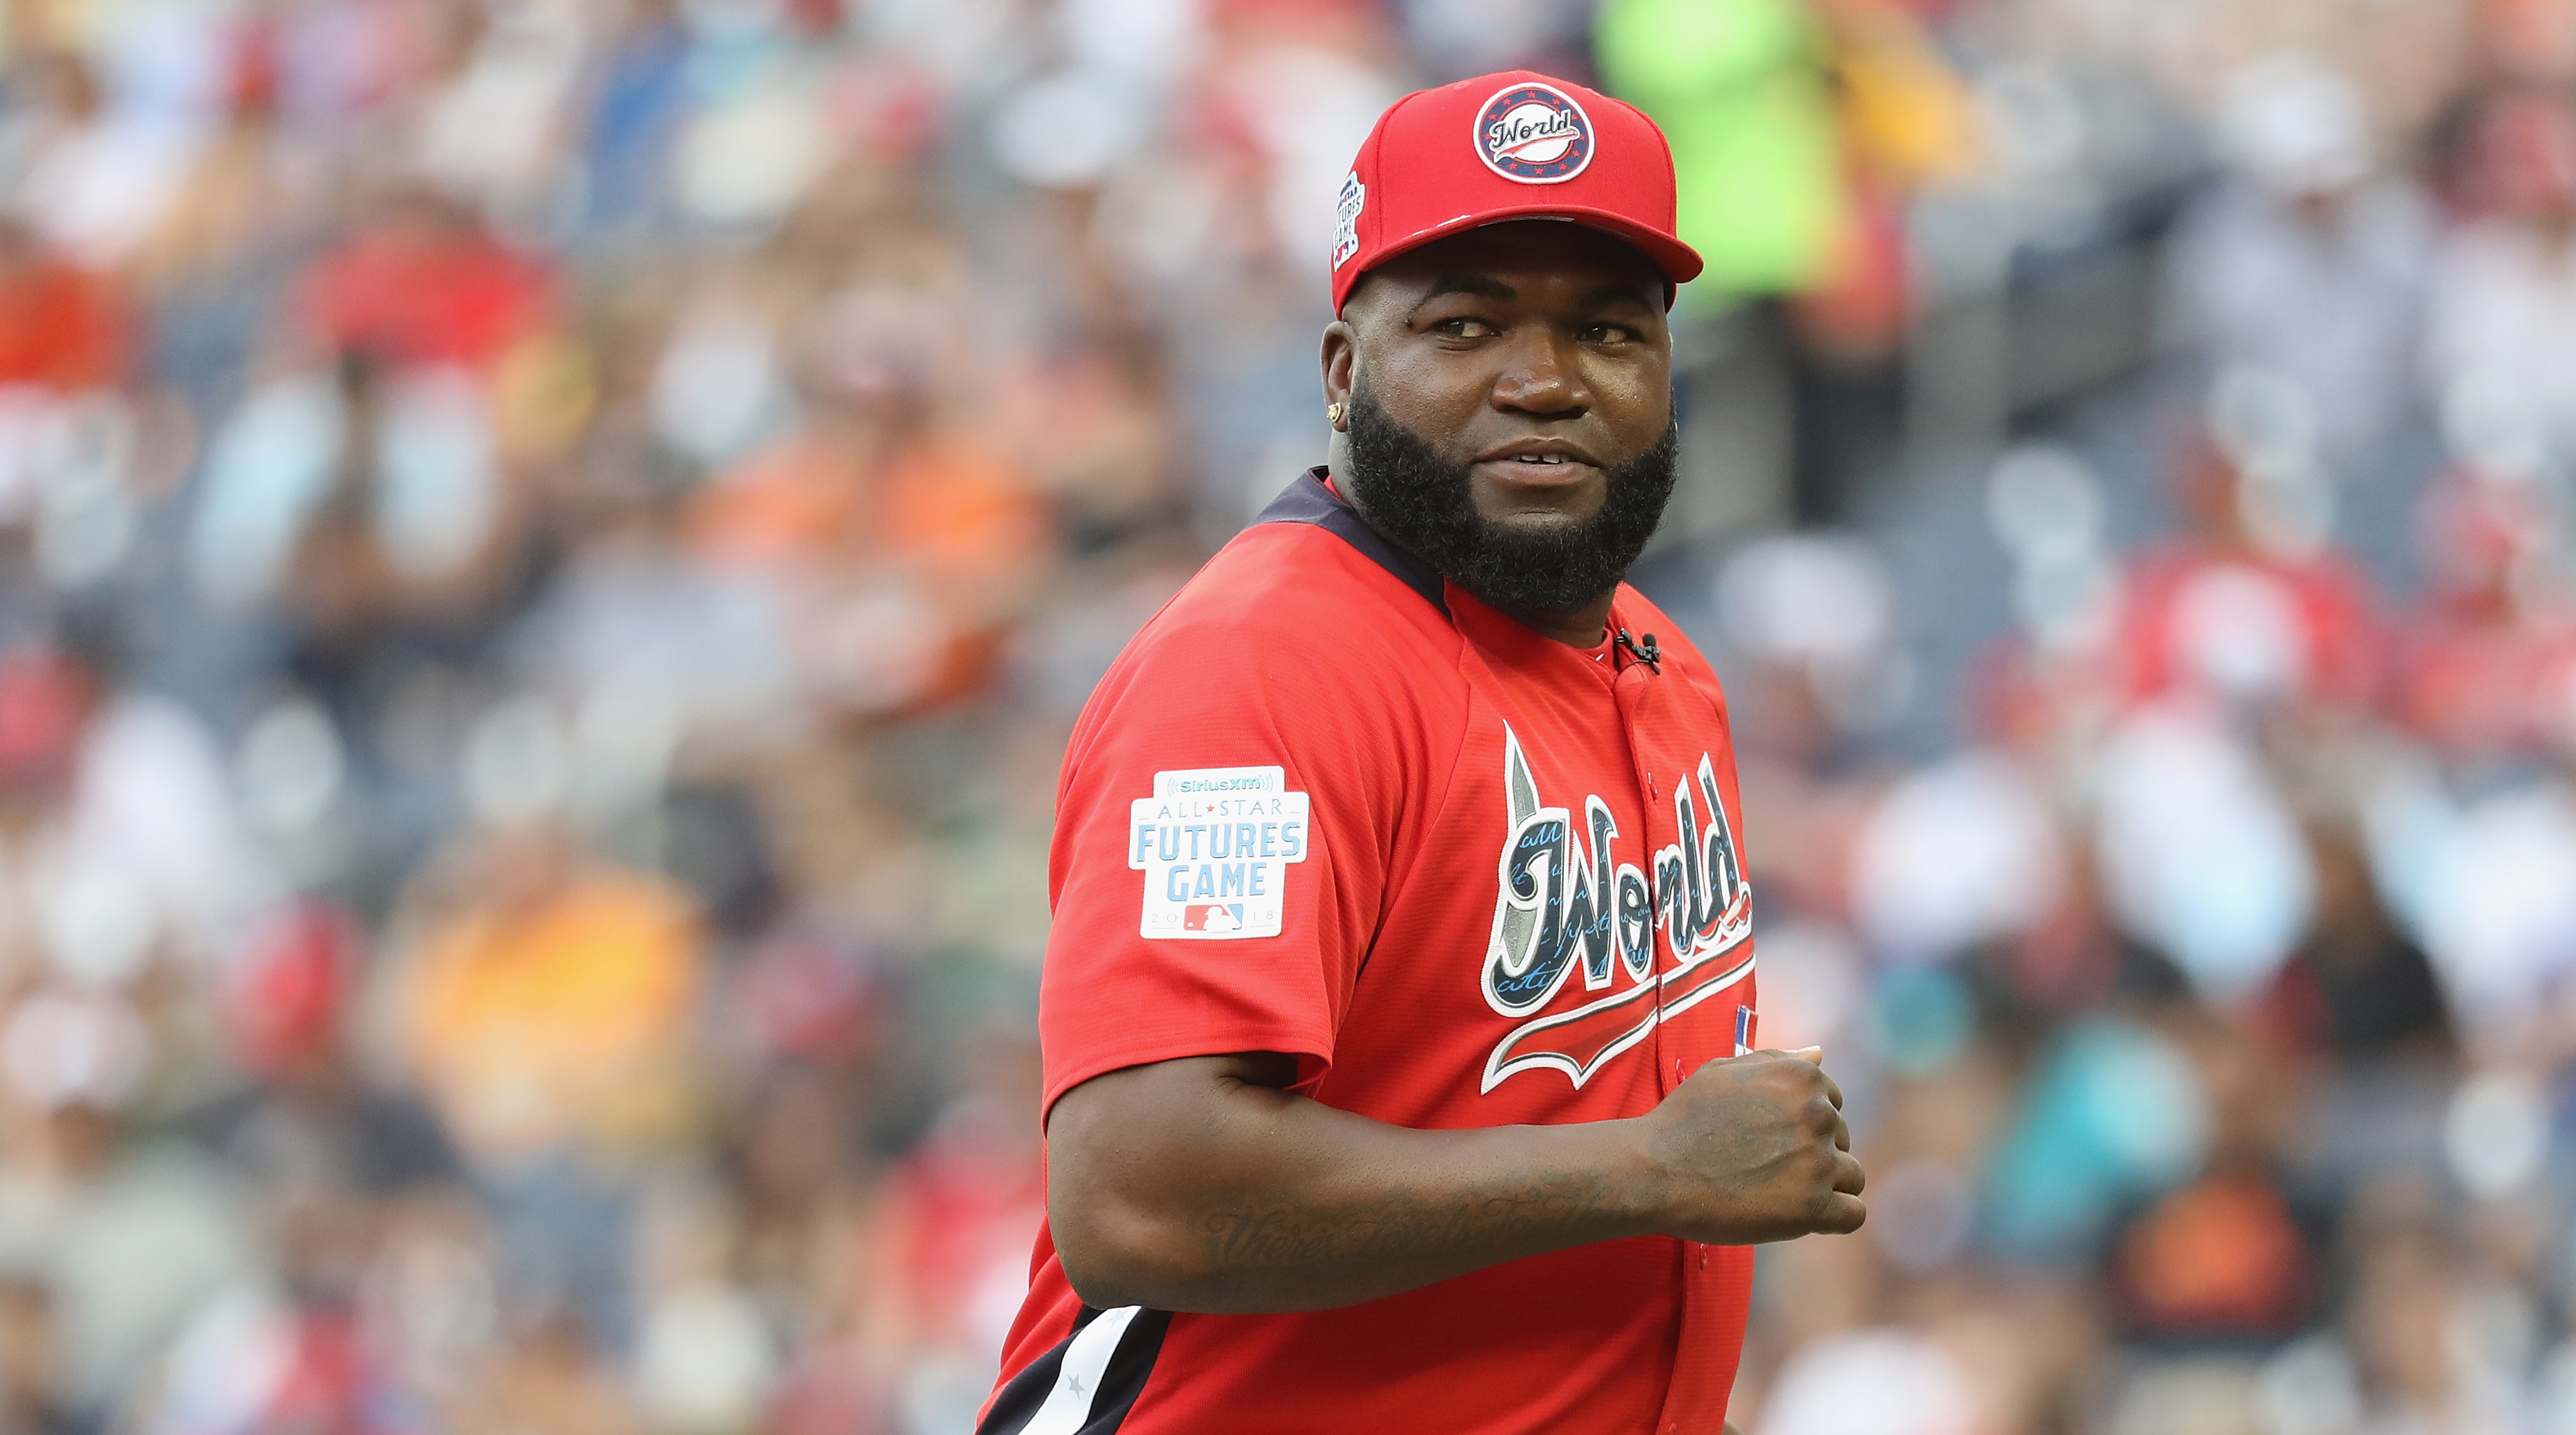 David Ortiz Hires Ex-Boston Police Commissioner to Look Into Shooting